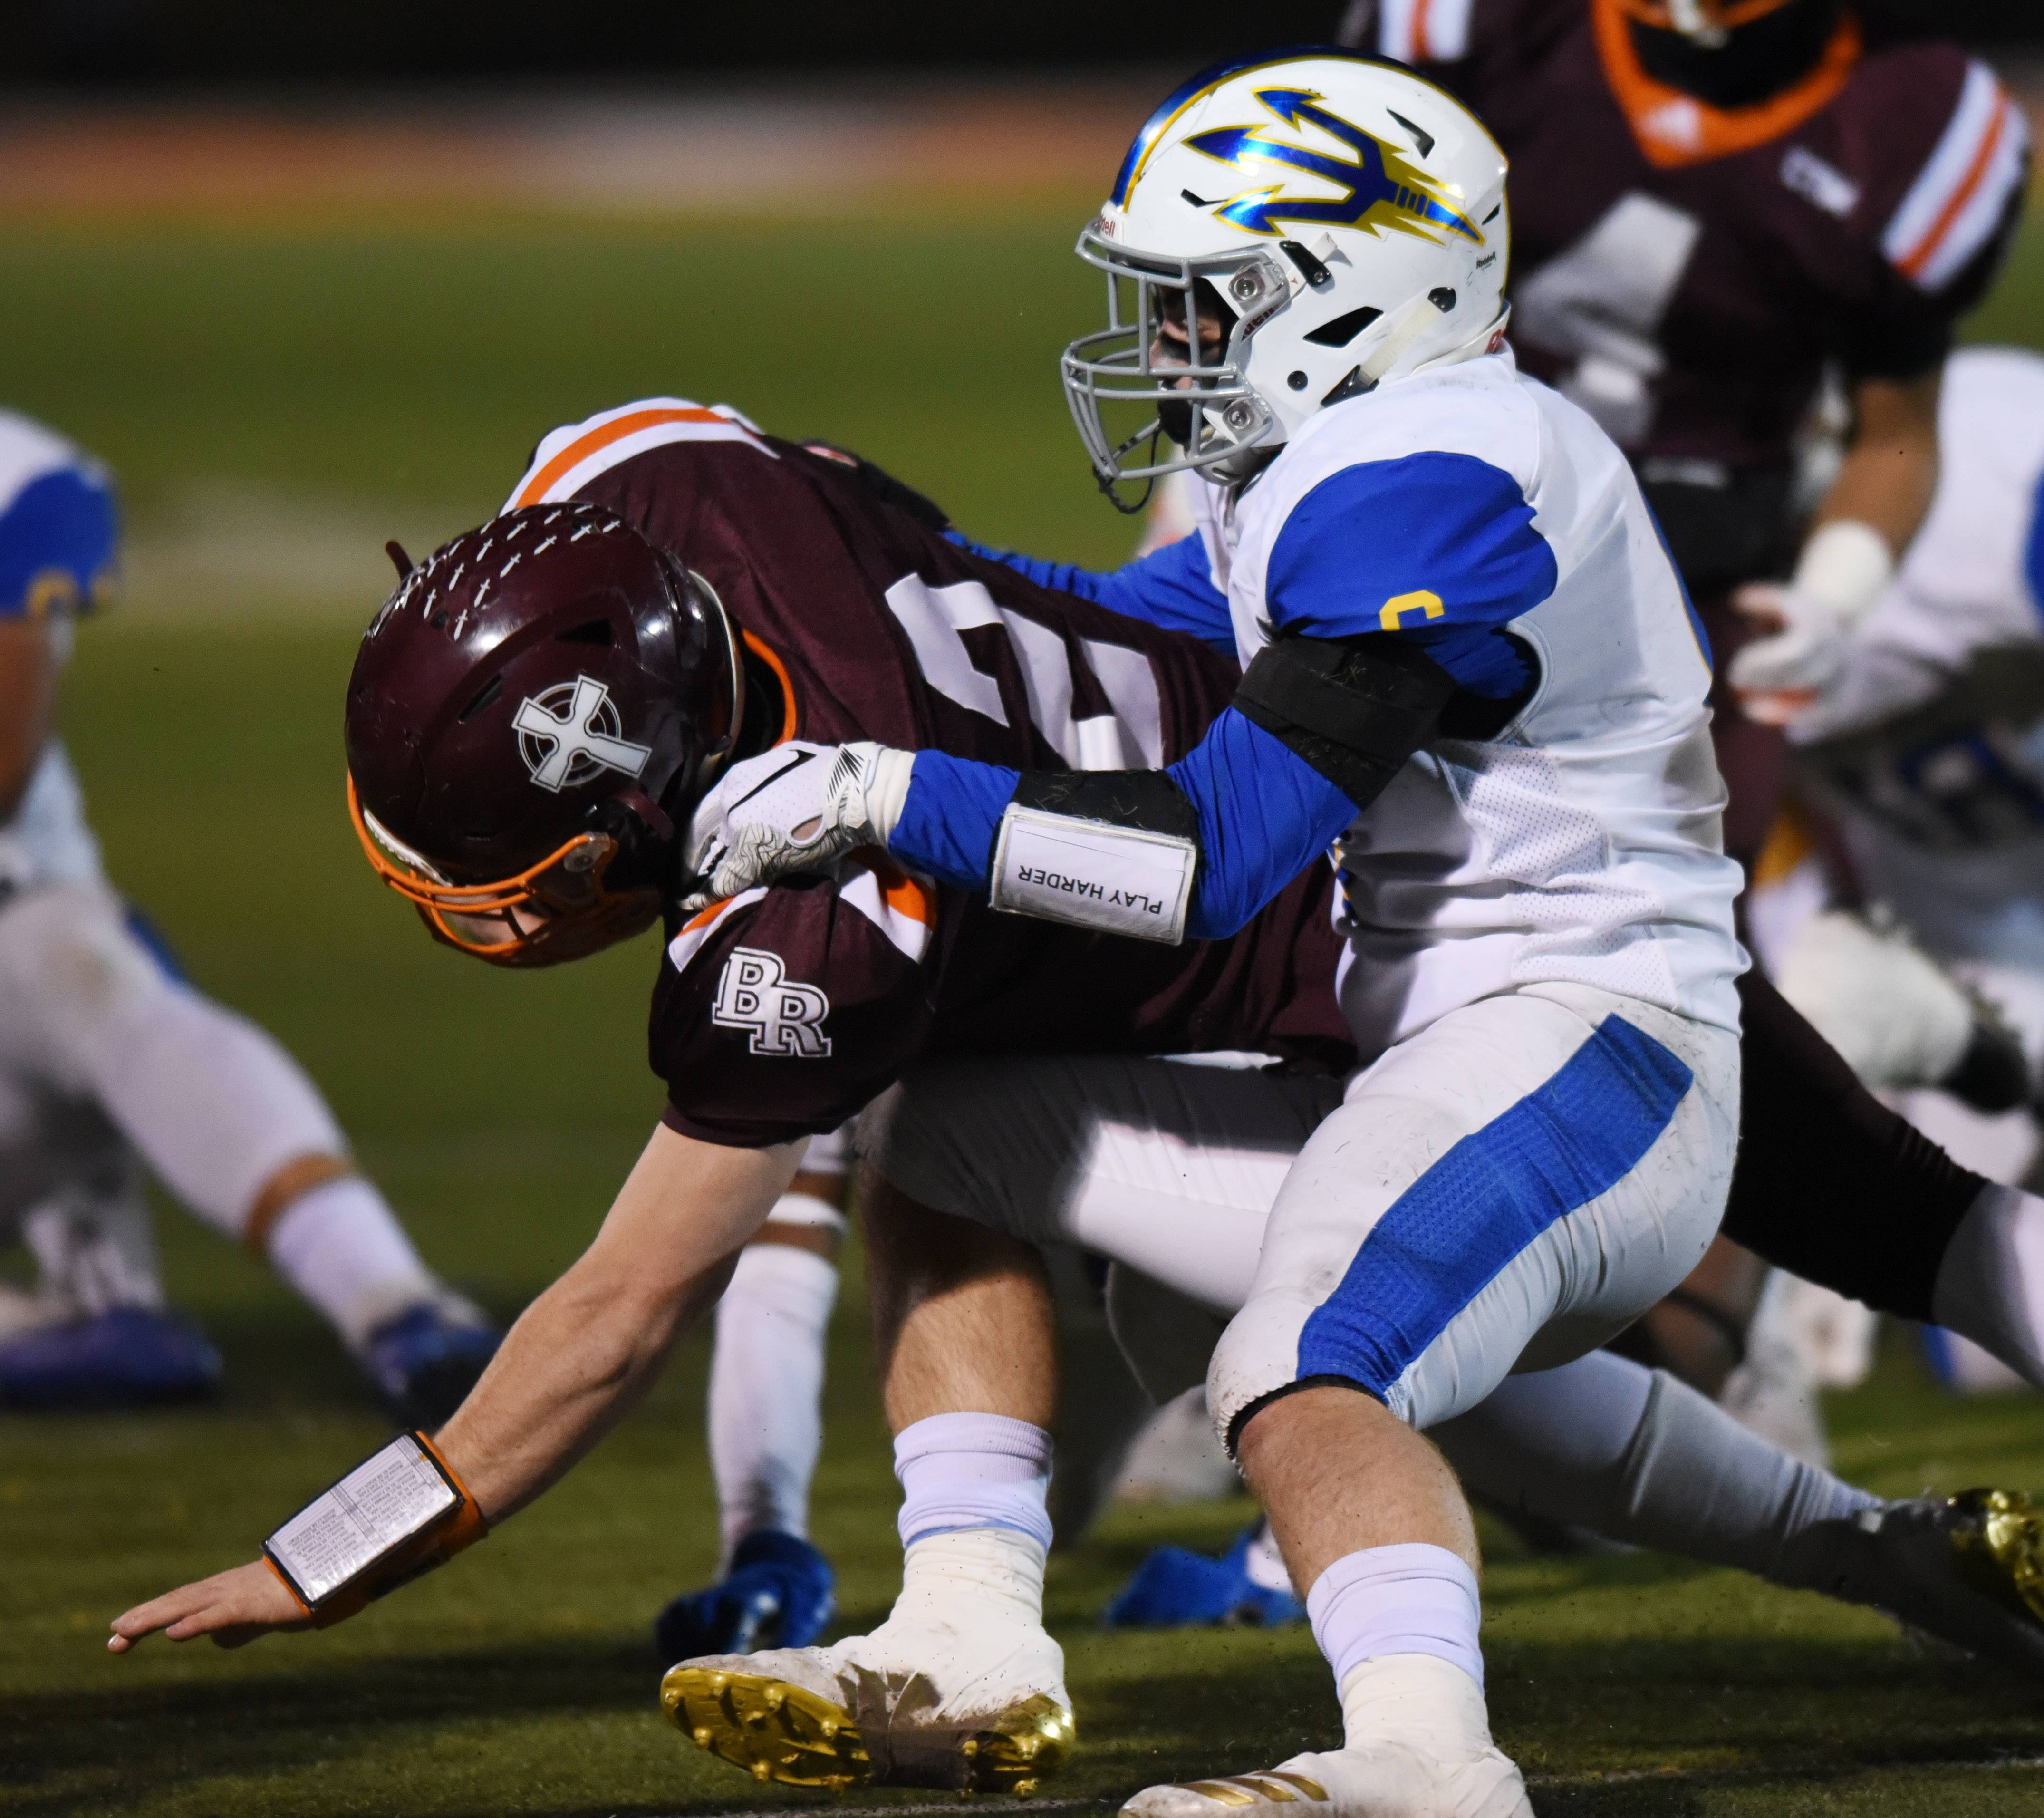 Warren's Brian Mohry, right, tackles Brother Rice quarterback John Bean during the Class 8A state quarterfinal in Chicago Saturday.